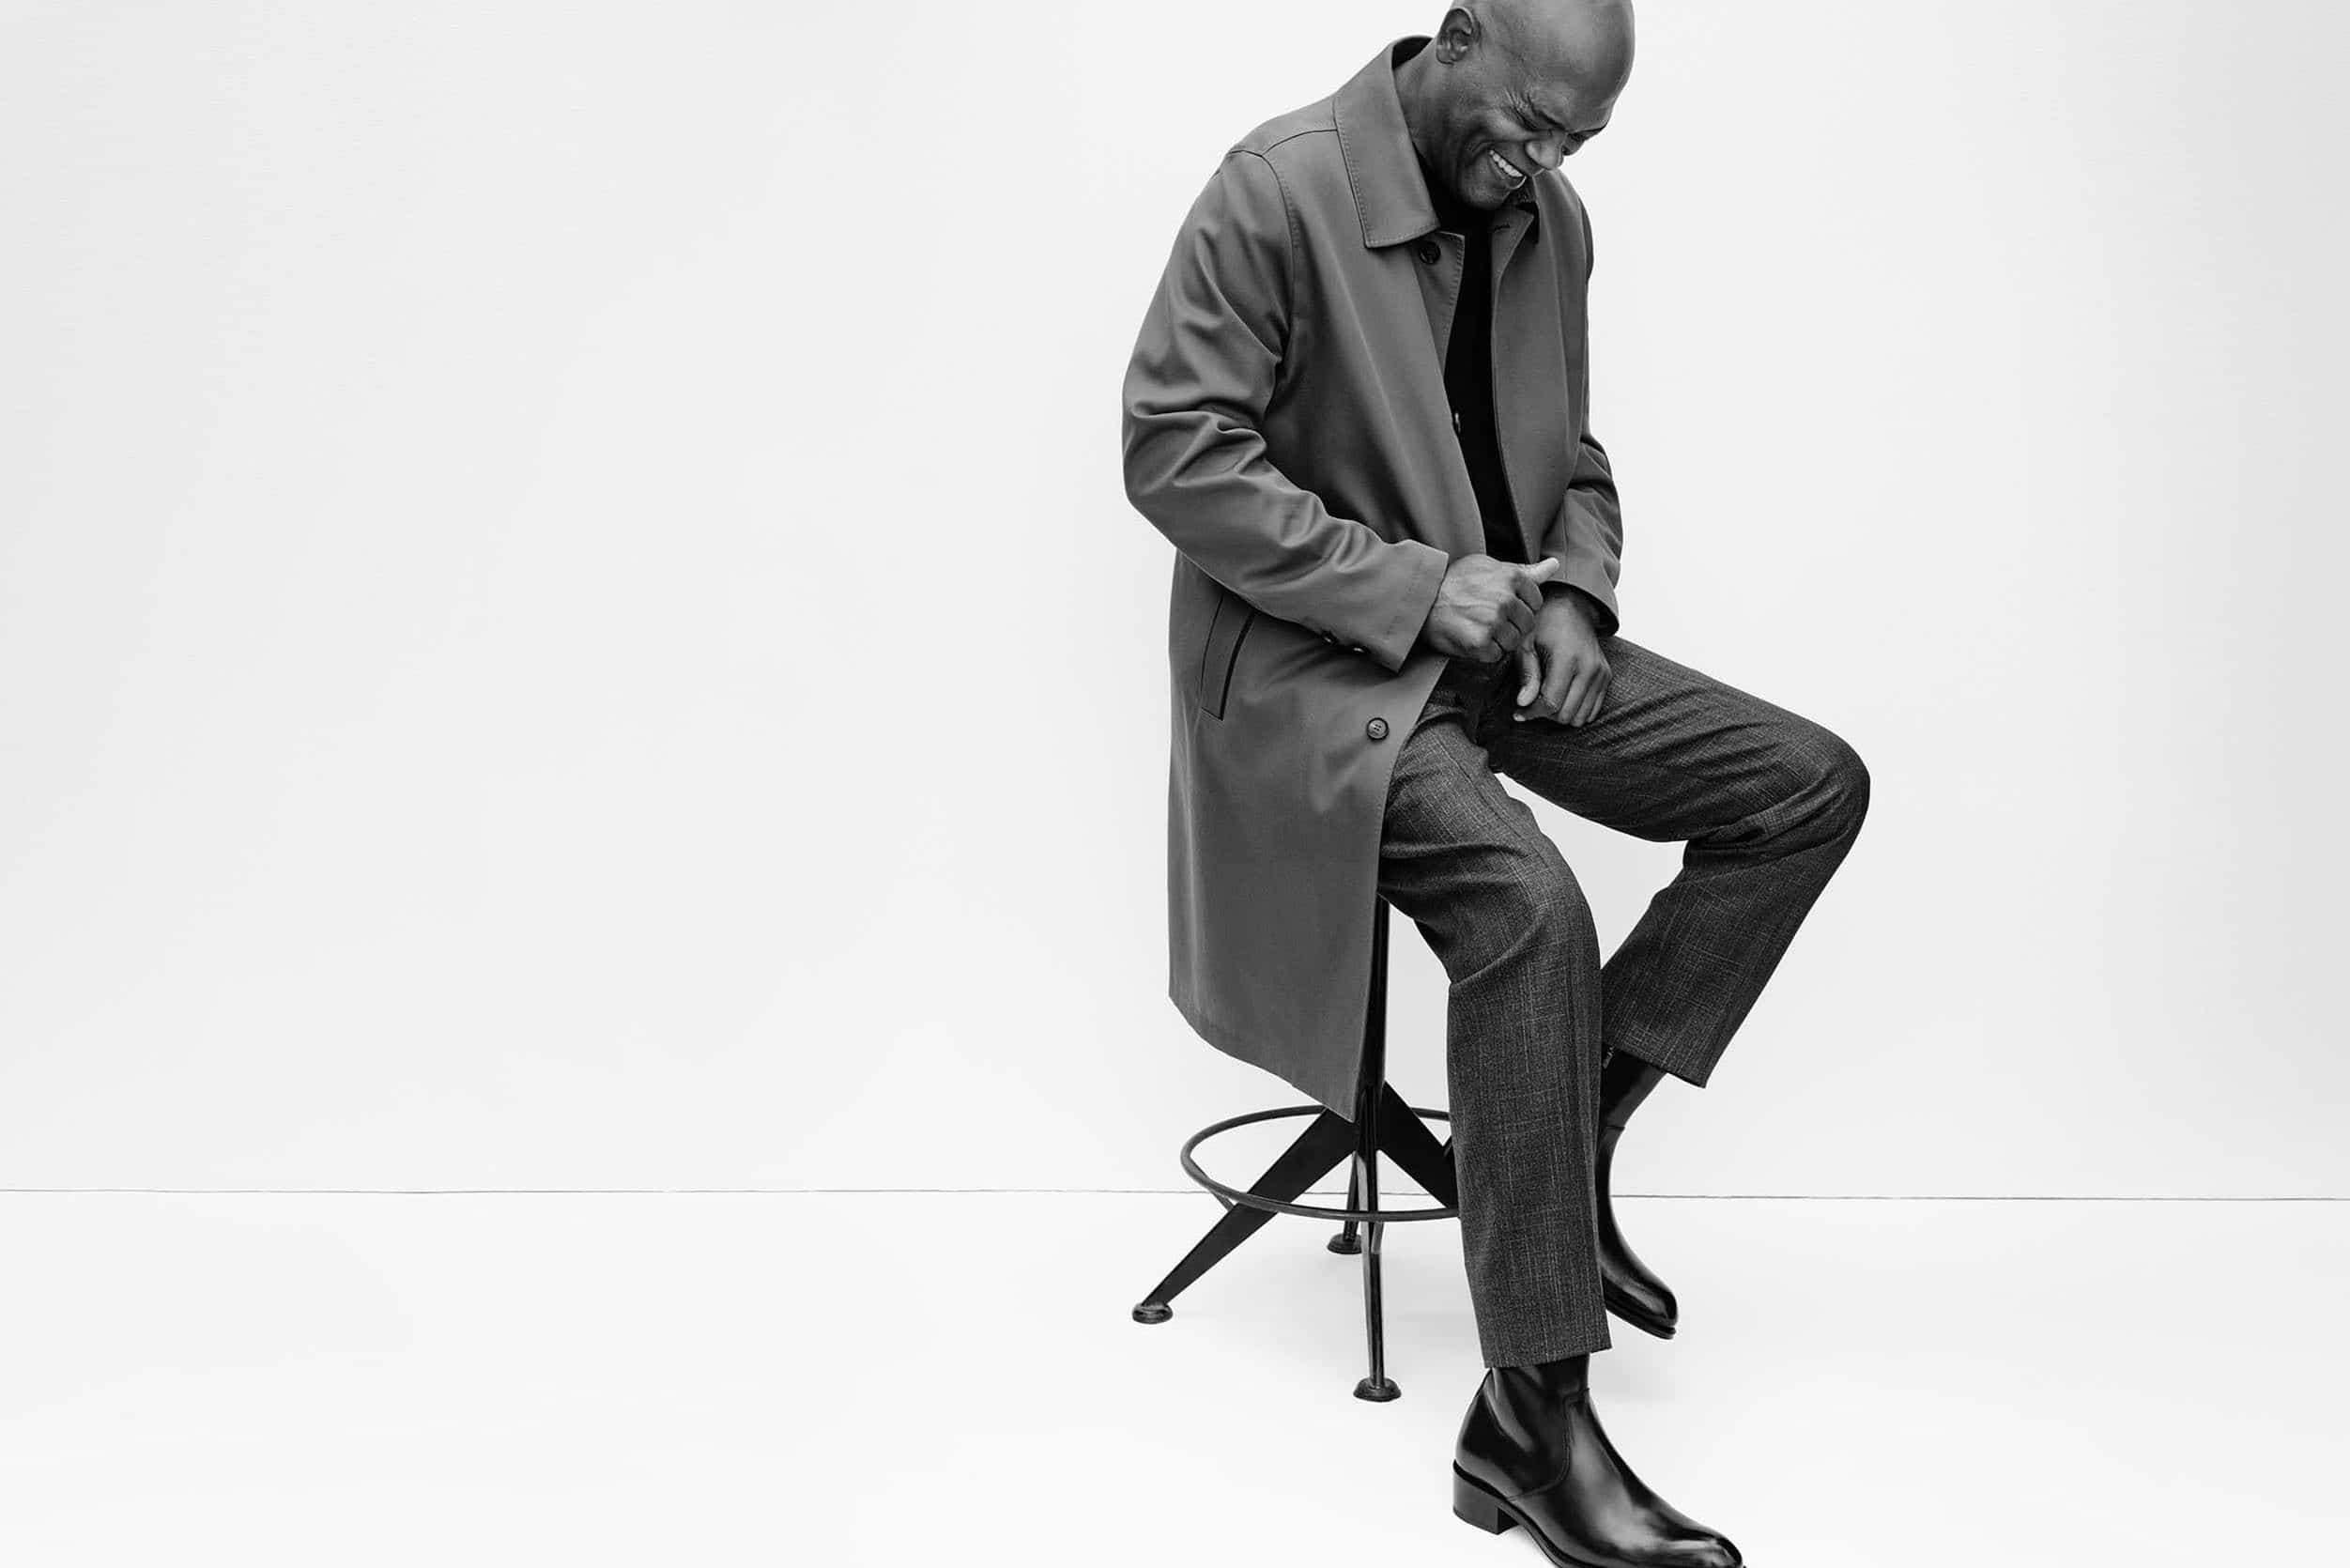 Brioni-advertising-Samuel-L-Jackson-coat